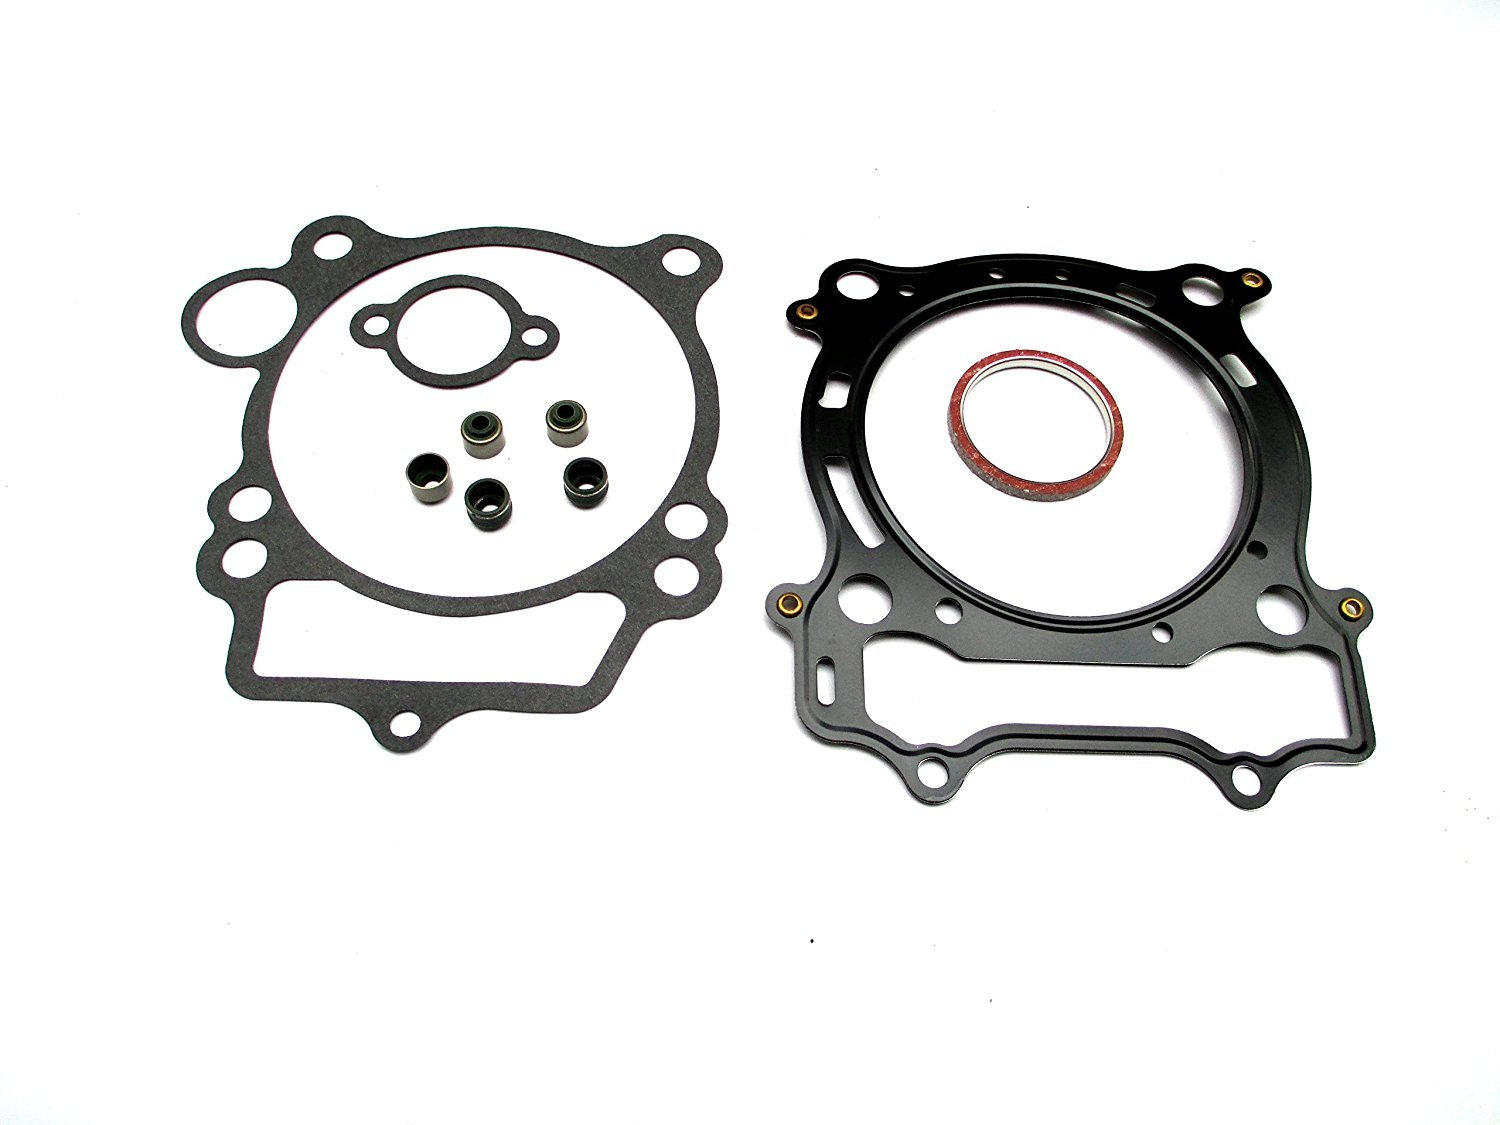 New Top End Head Gasket Kit Replacement for YAMAHA YFZ 450 2004 2009 2012-2013 NEW YFZ450